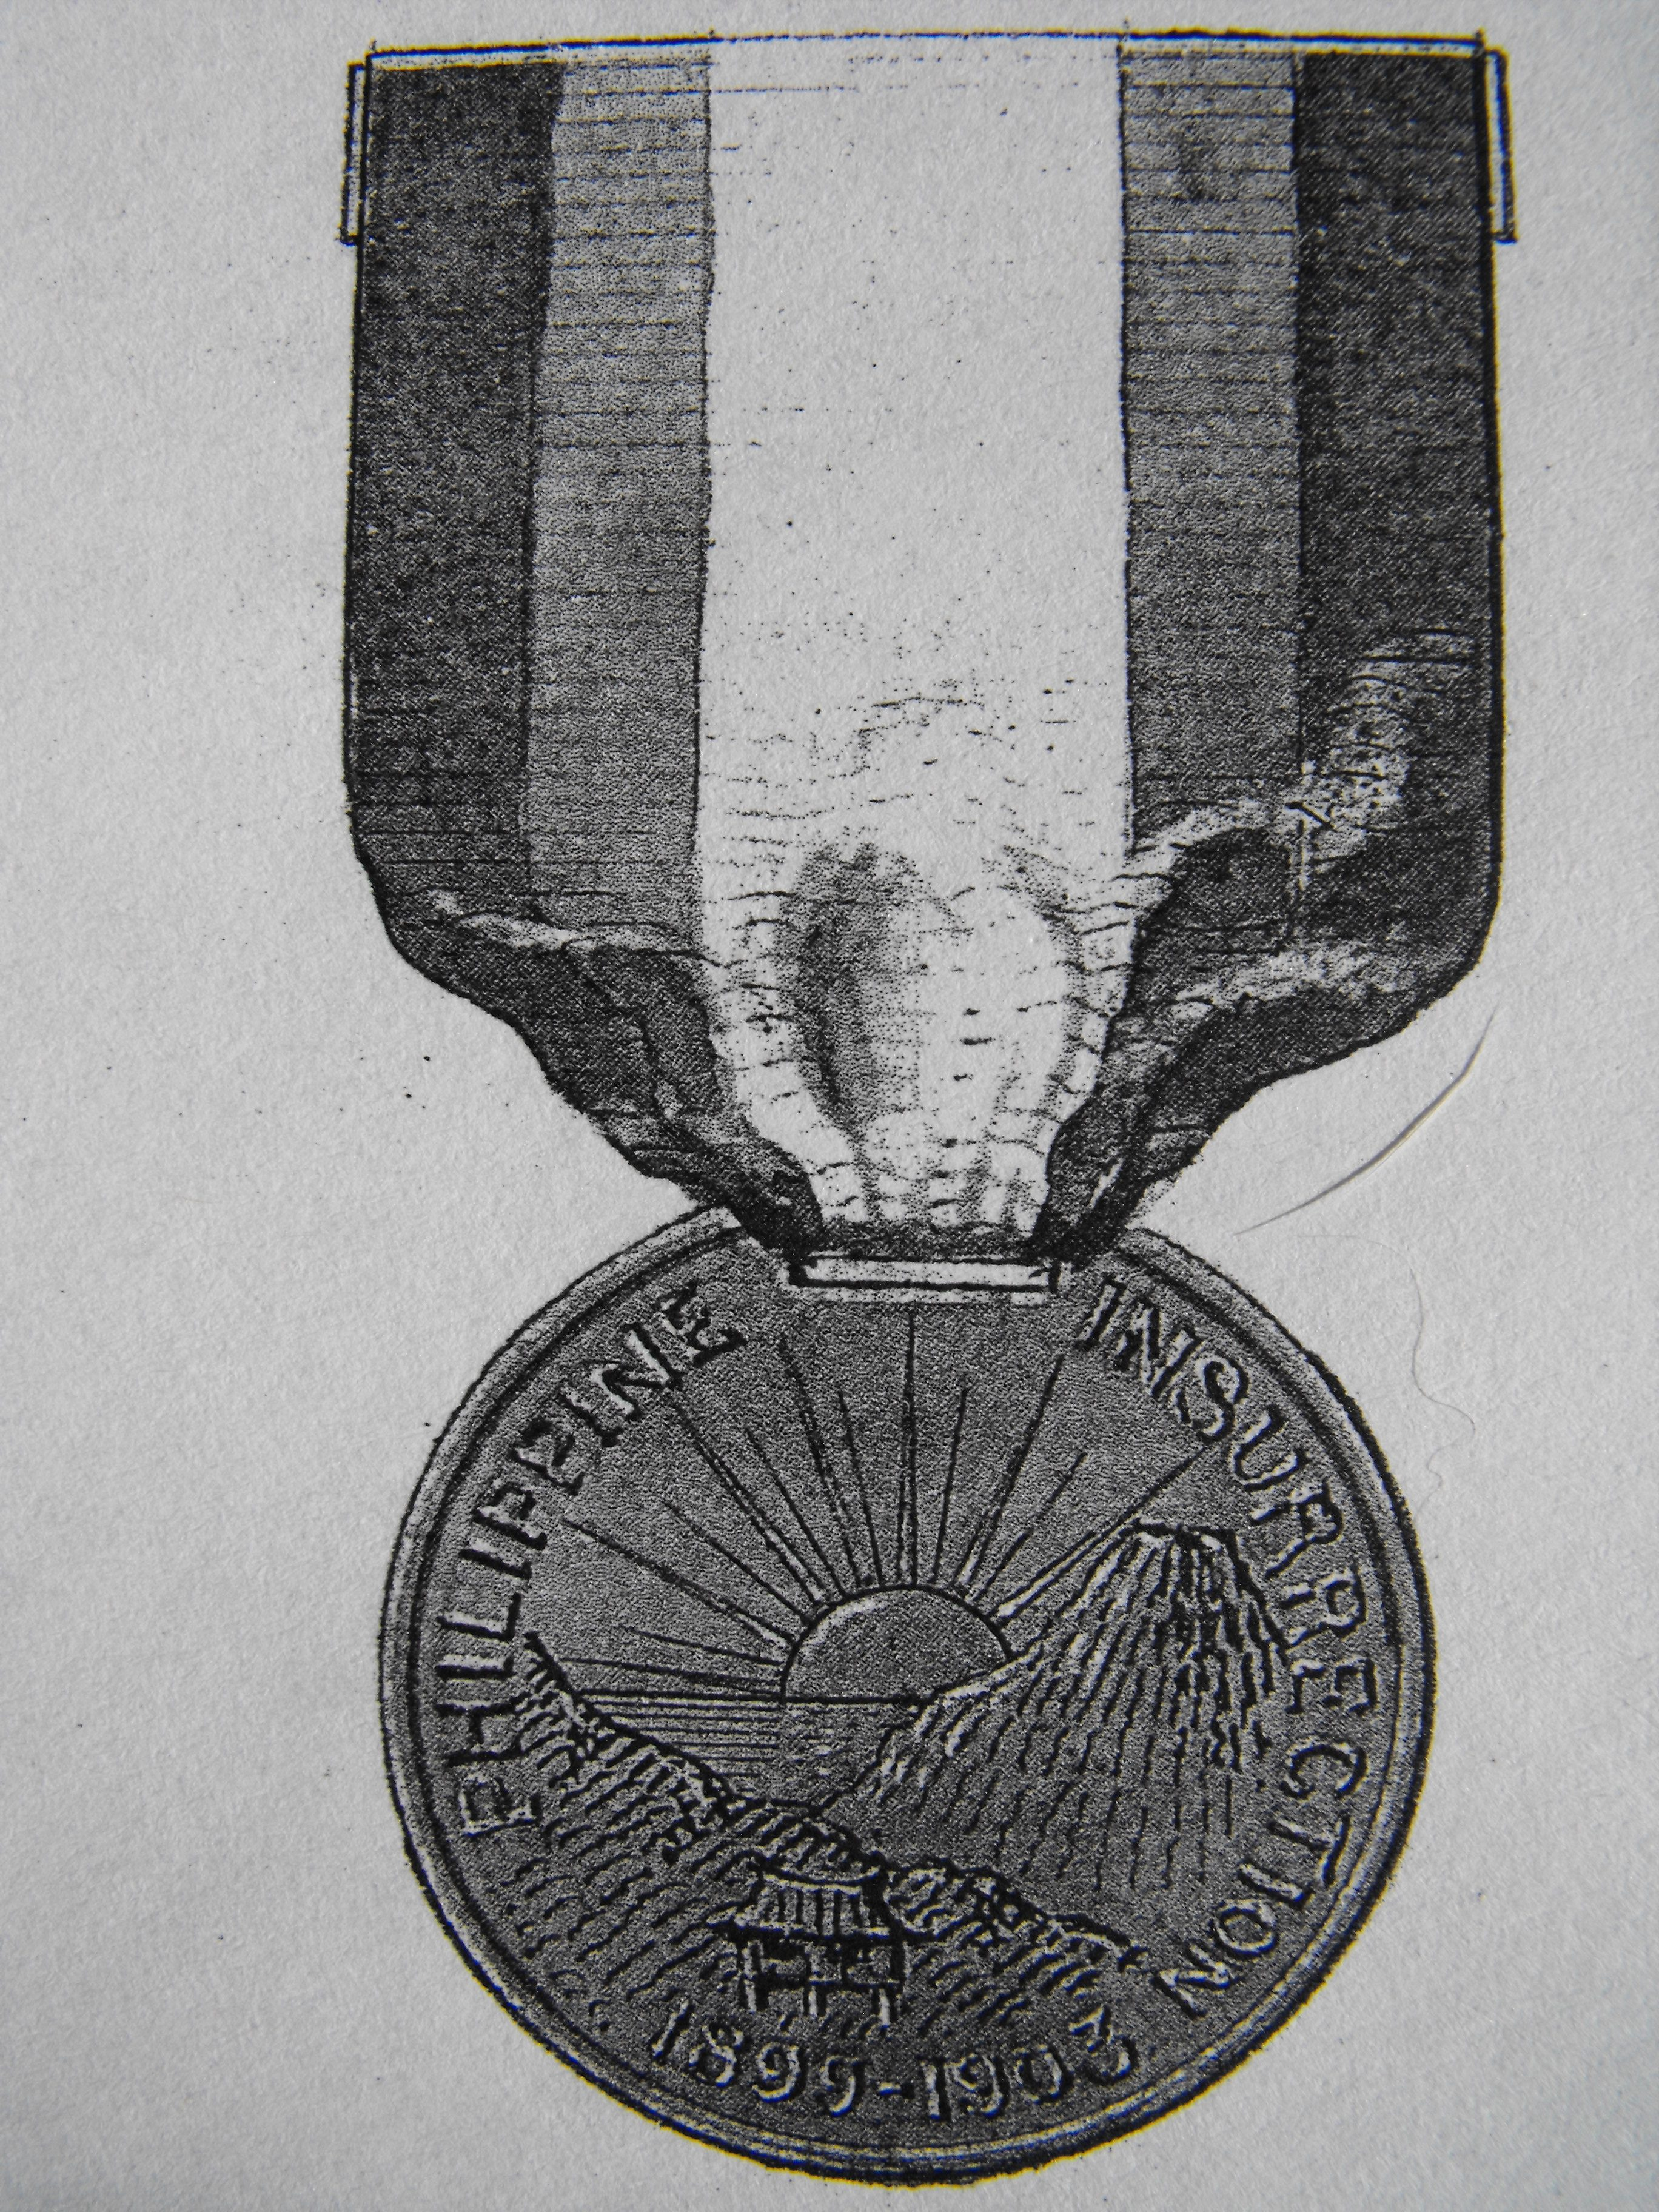 A Serious Contender to be the Philippines Insurrection Campaign Medal